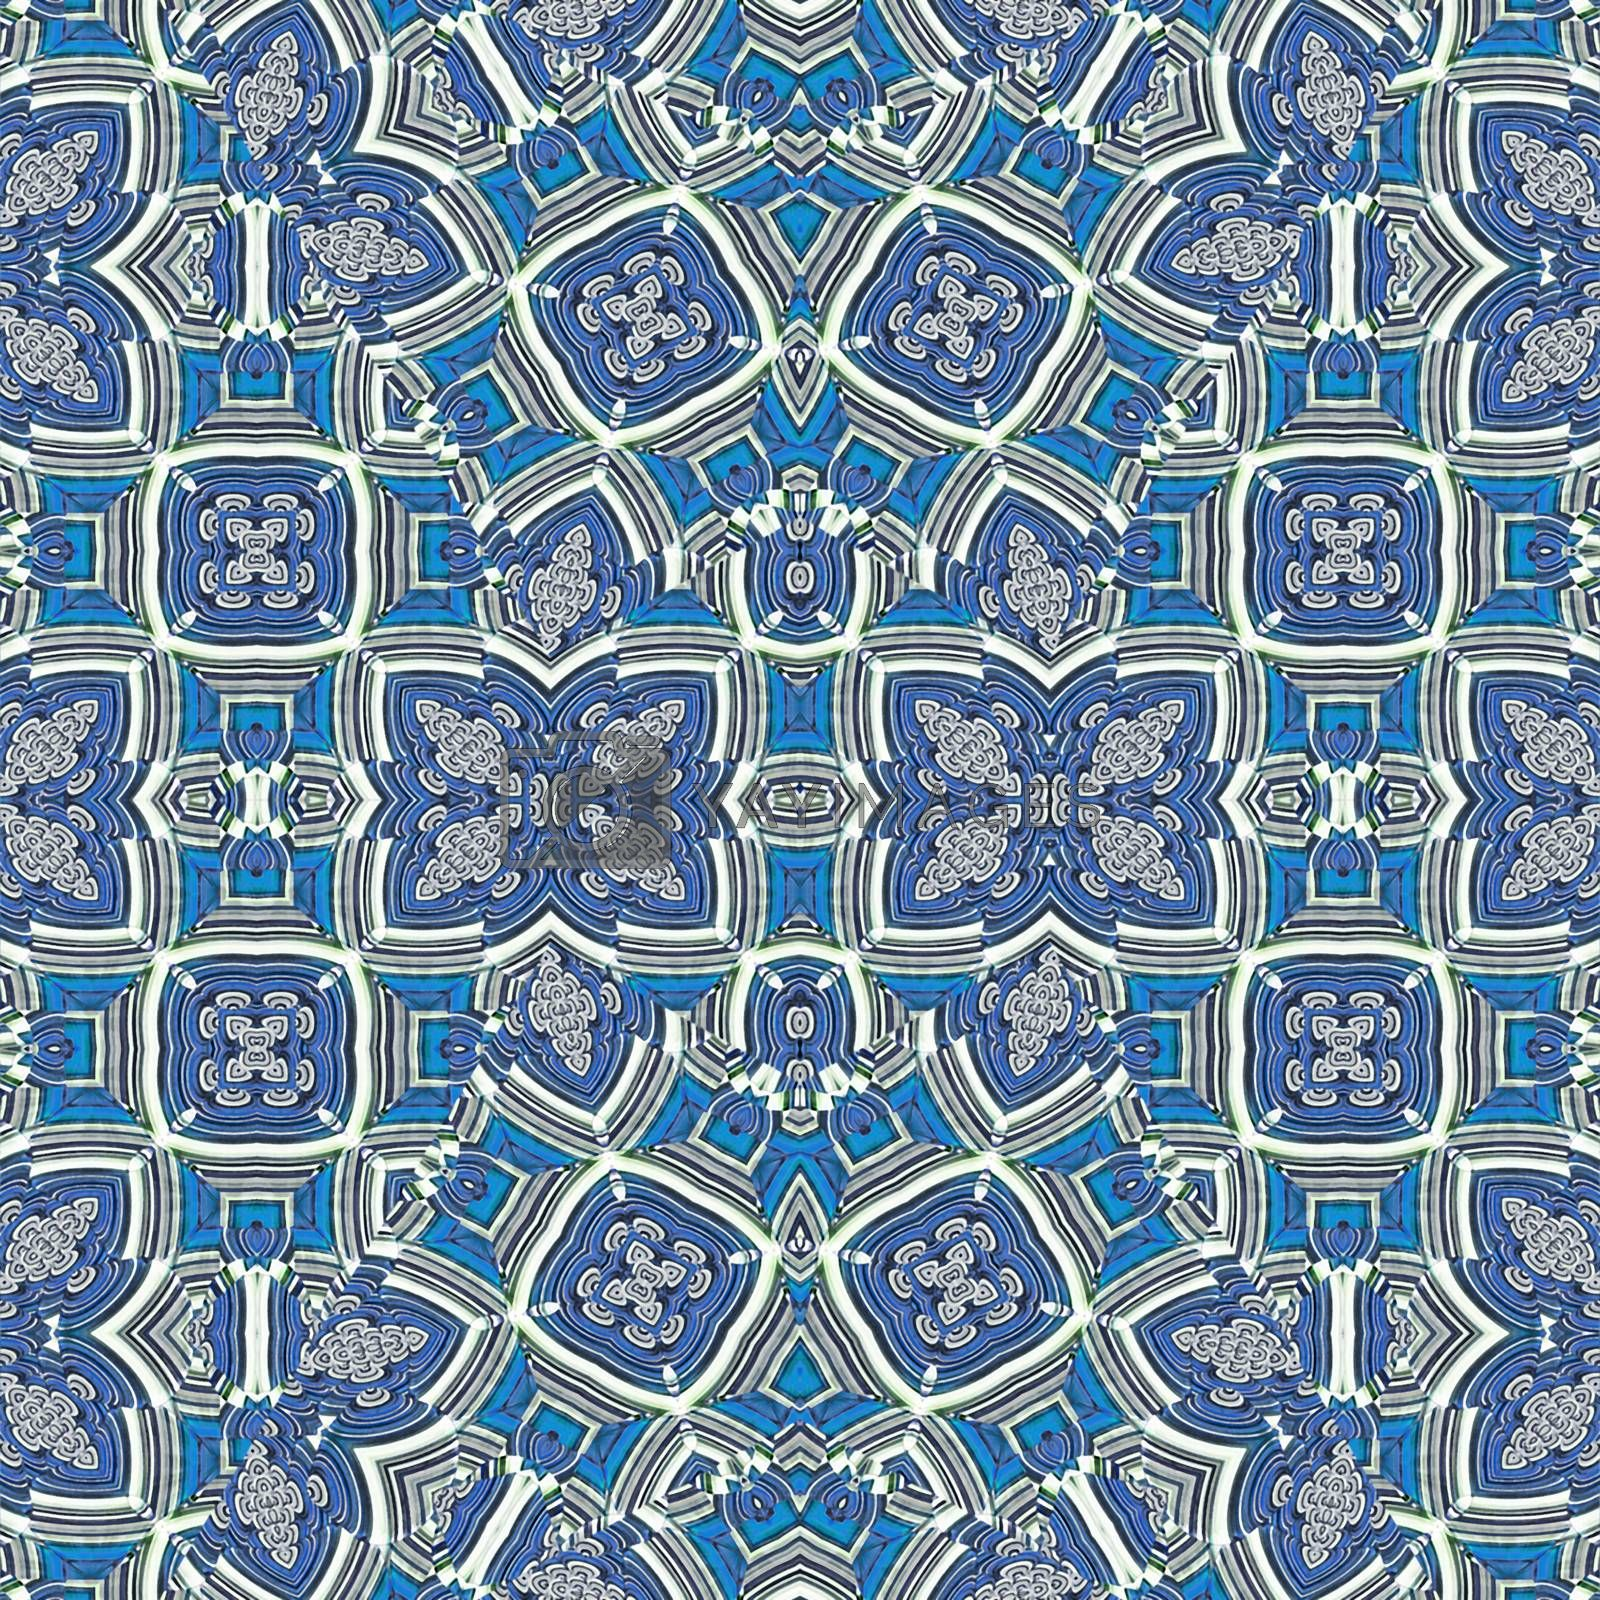 Digital art collage technique luxury decorative modern geometric seamless pattern in blue and white colors.